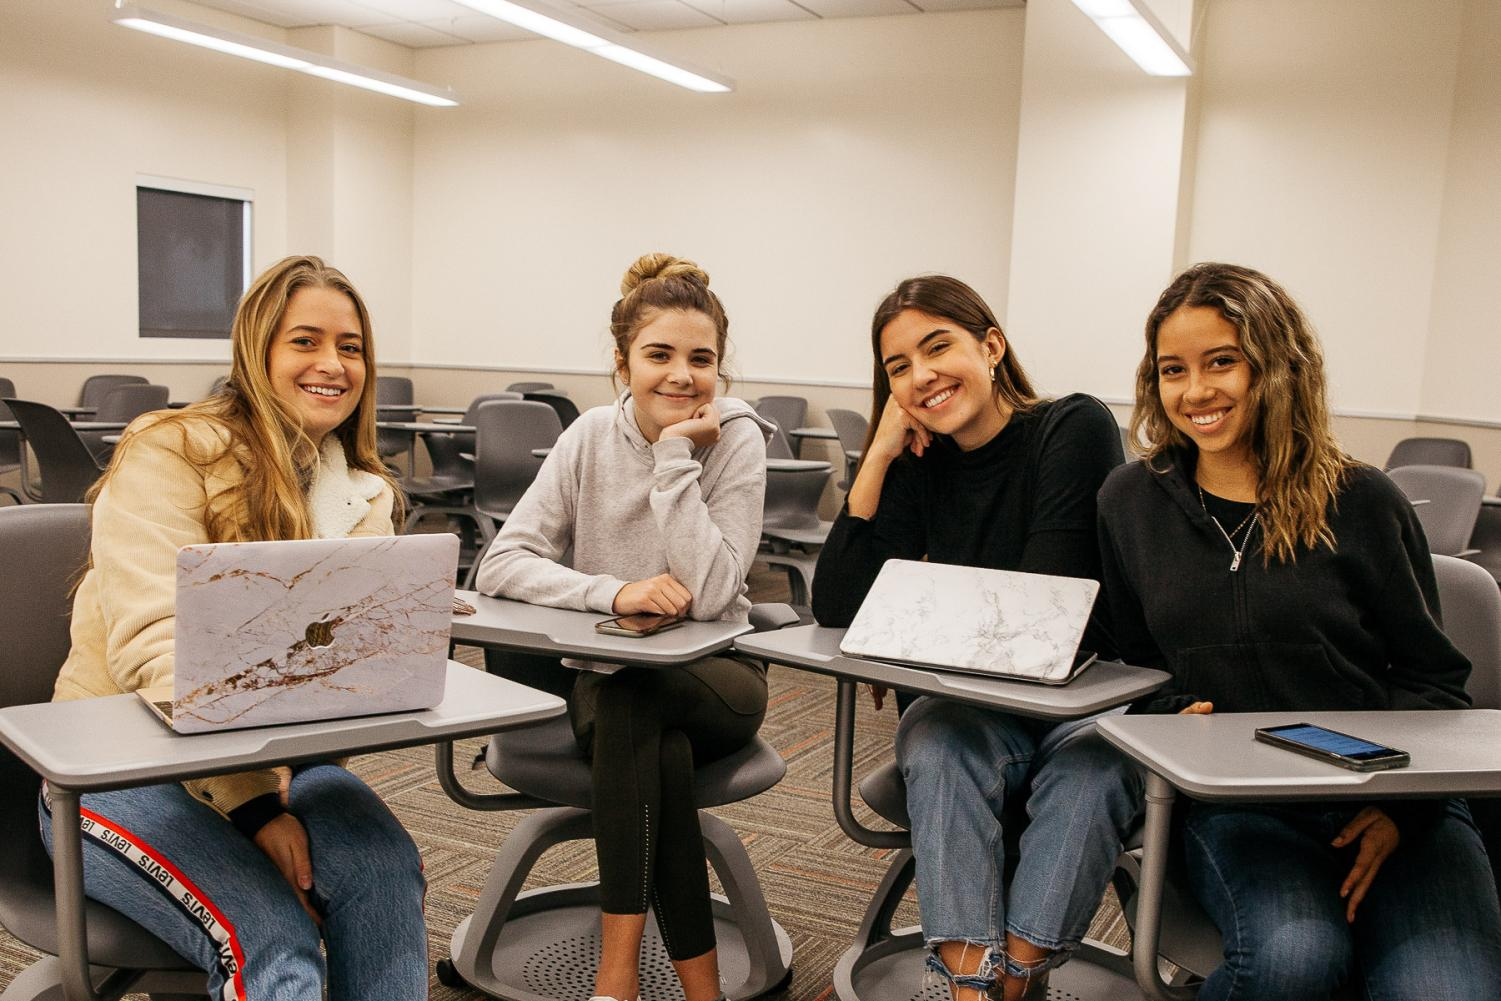 From left, Social Media Club Board Members Florentina Lang, Olivia Clark, Gabriela Donatti, and Jasmine Brewster pose on Tuesday, Dec. 6, in the West Campus Center at City College in Santa Barbara, Calif. The club intends to teach students about using social media as a marketing tool.